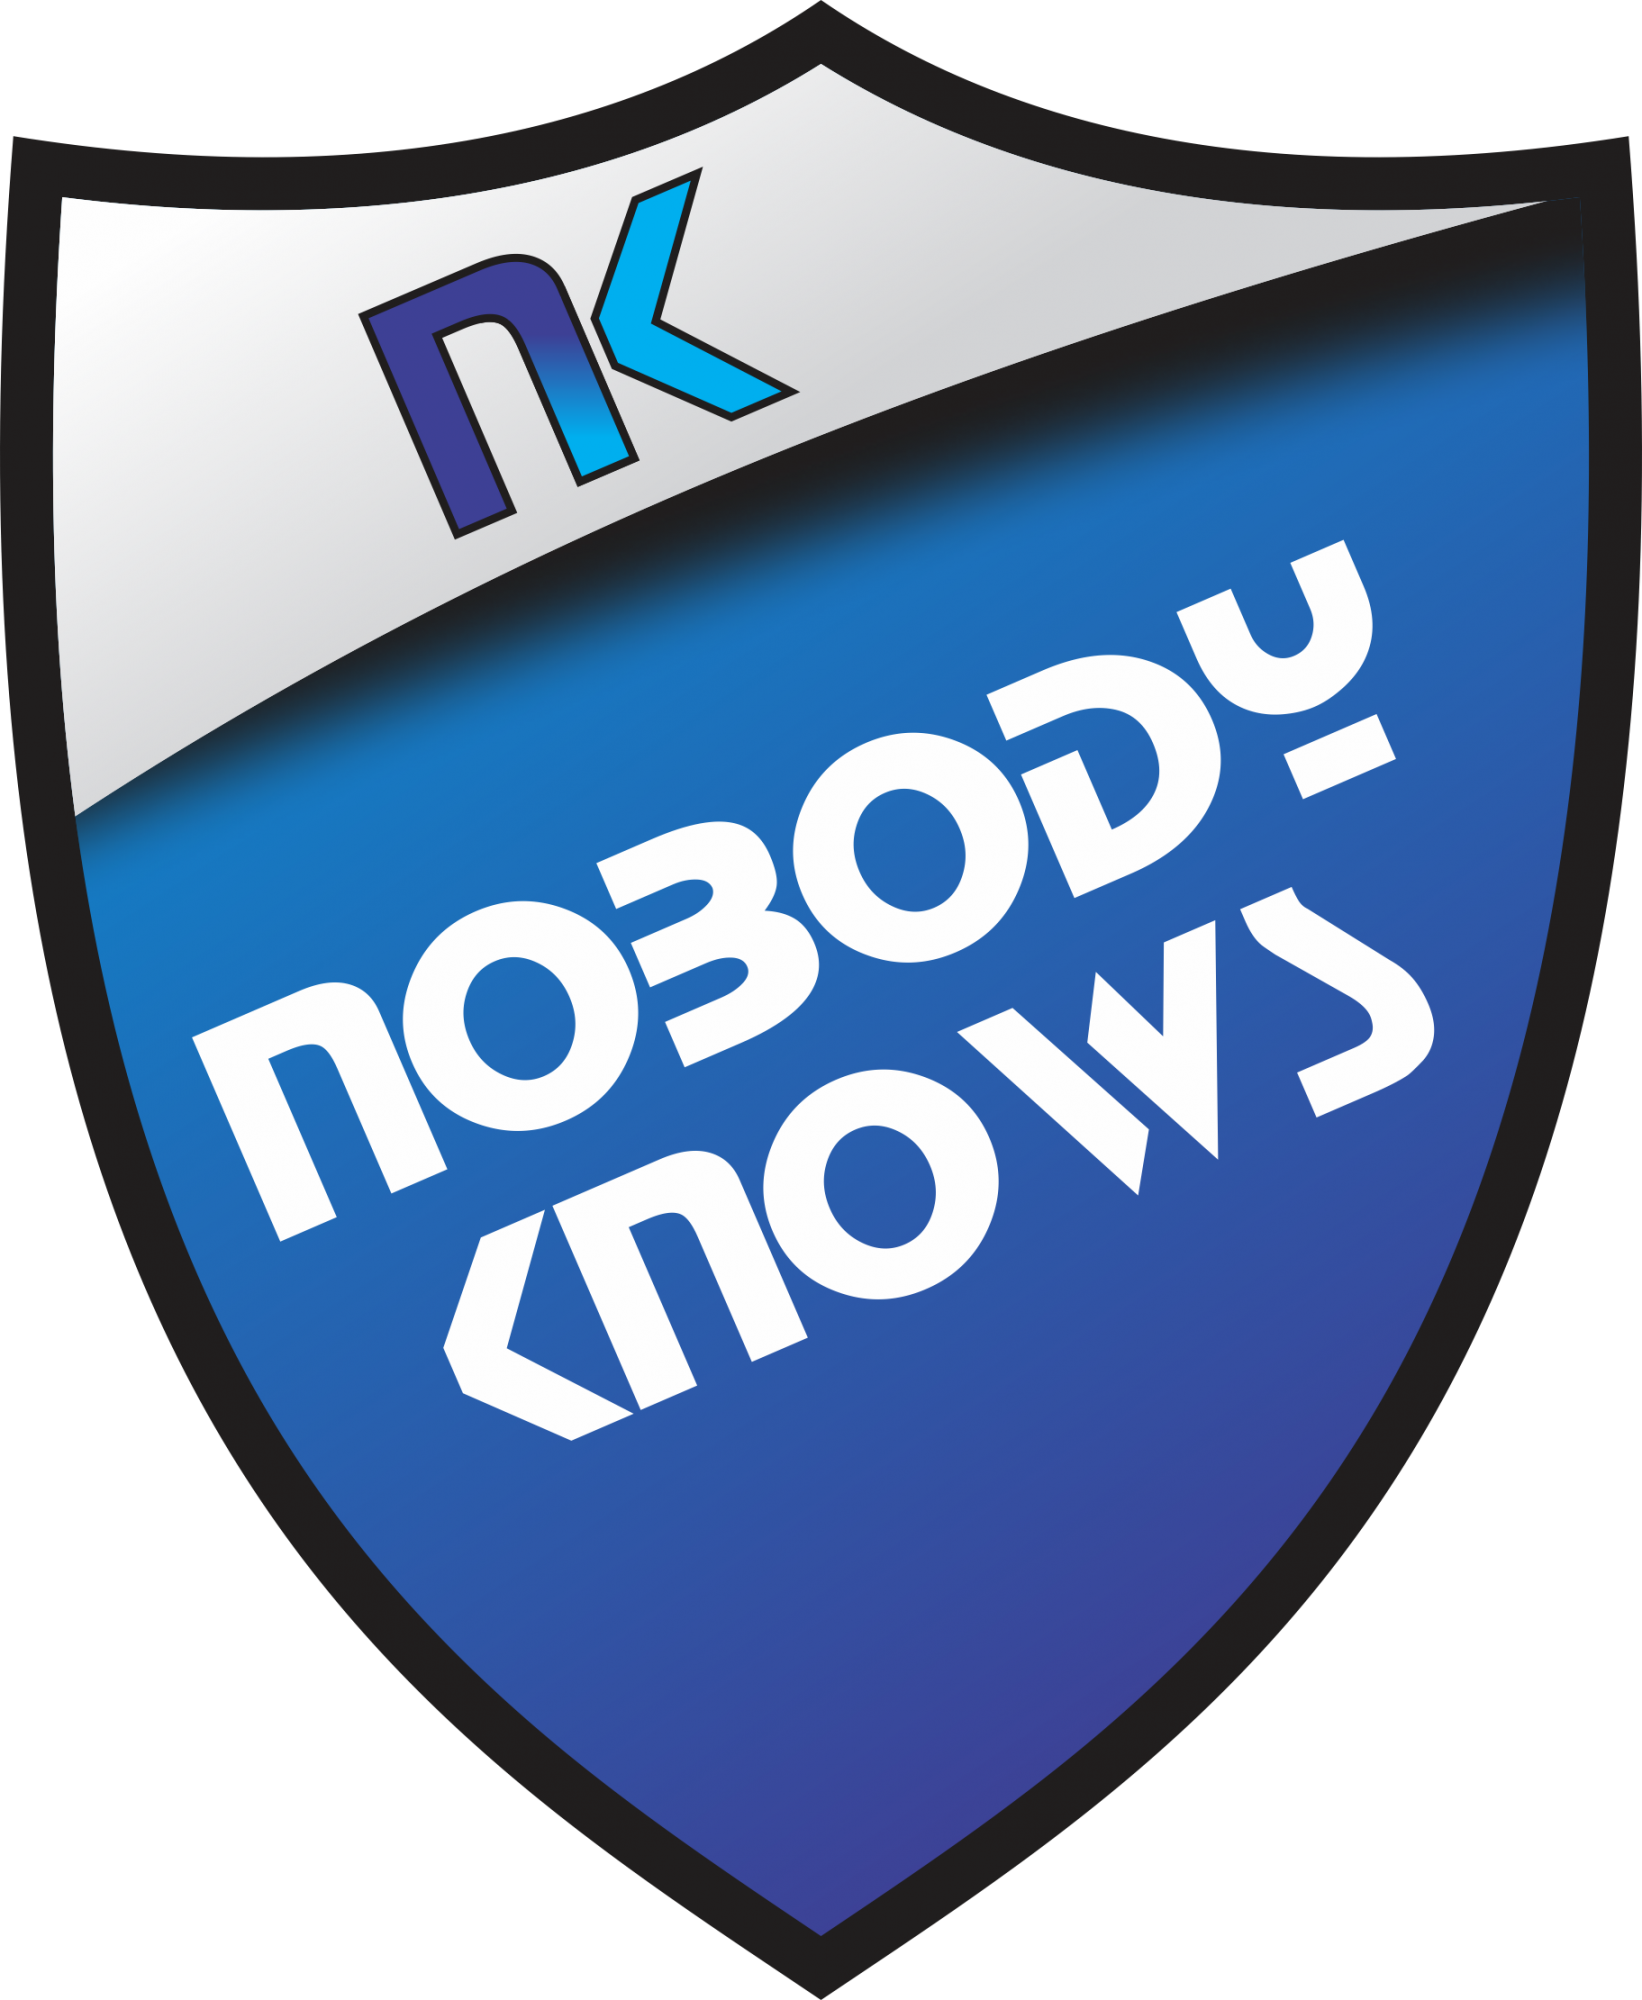 Shield png logo. Nk brands of the